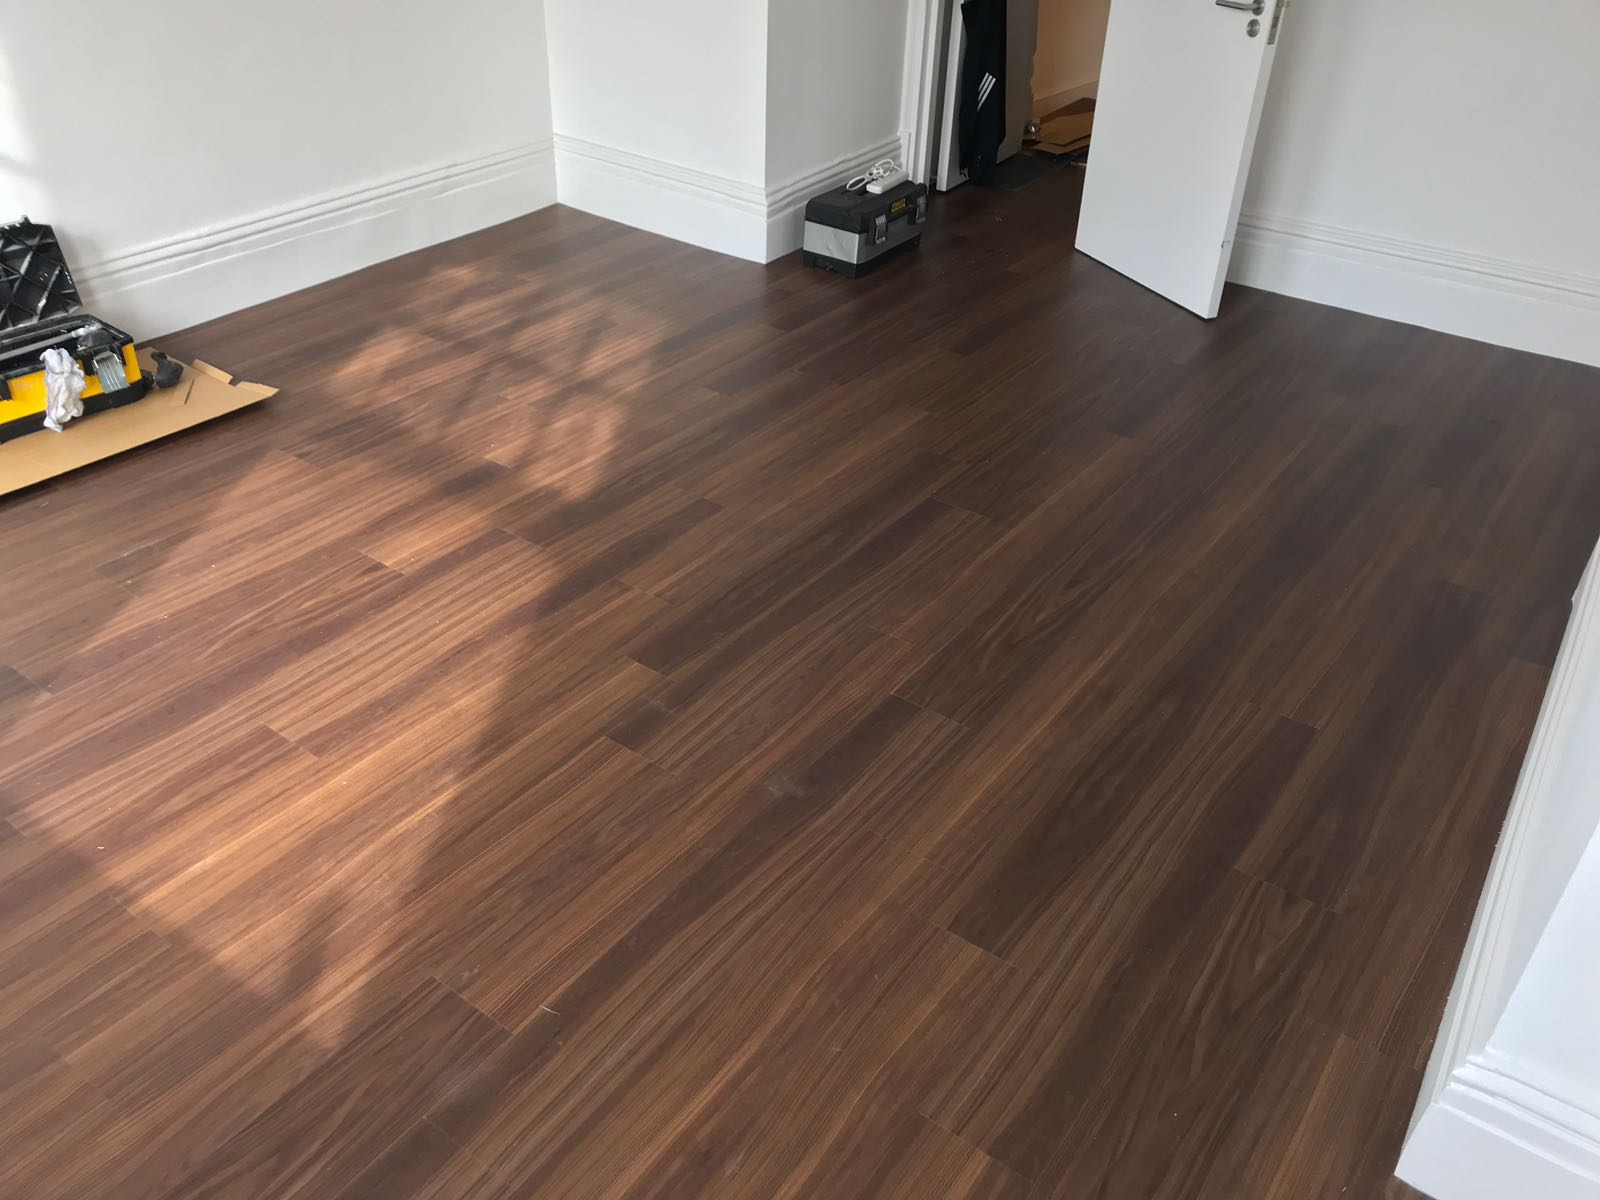 2018-04-24_Amtico Flooring Installed In Chelsea Residence (3)